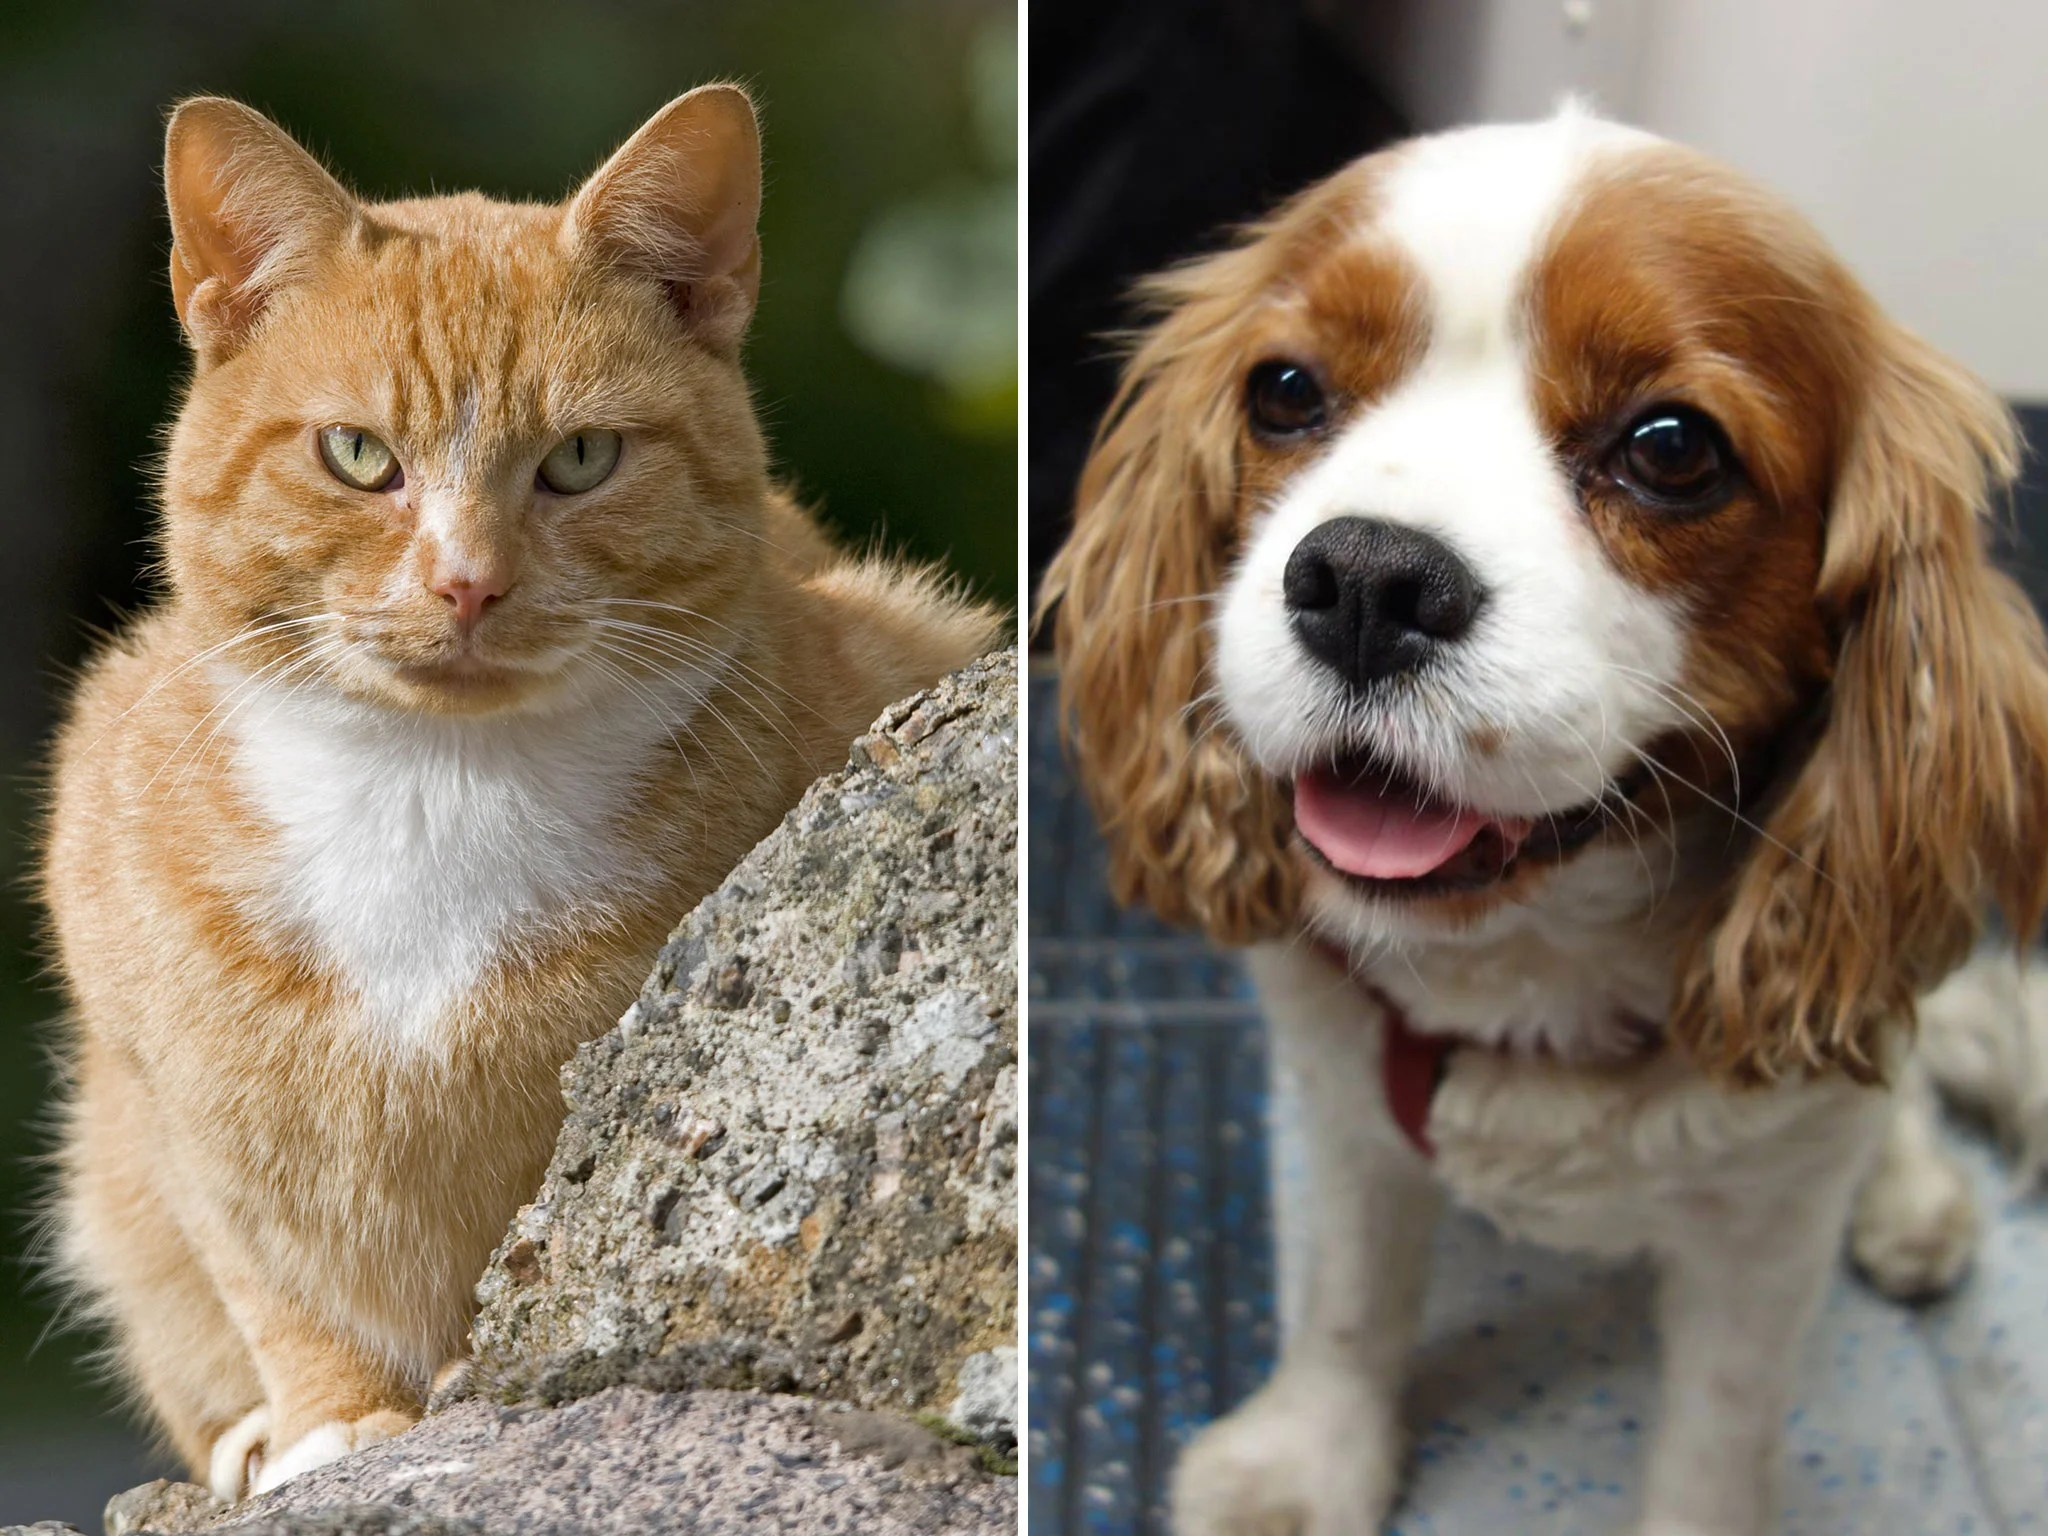 Cats Vs Dogs Scientists Confirm That Felines Are Better From An Evolutionary Perspective The Independent The Independent